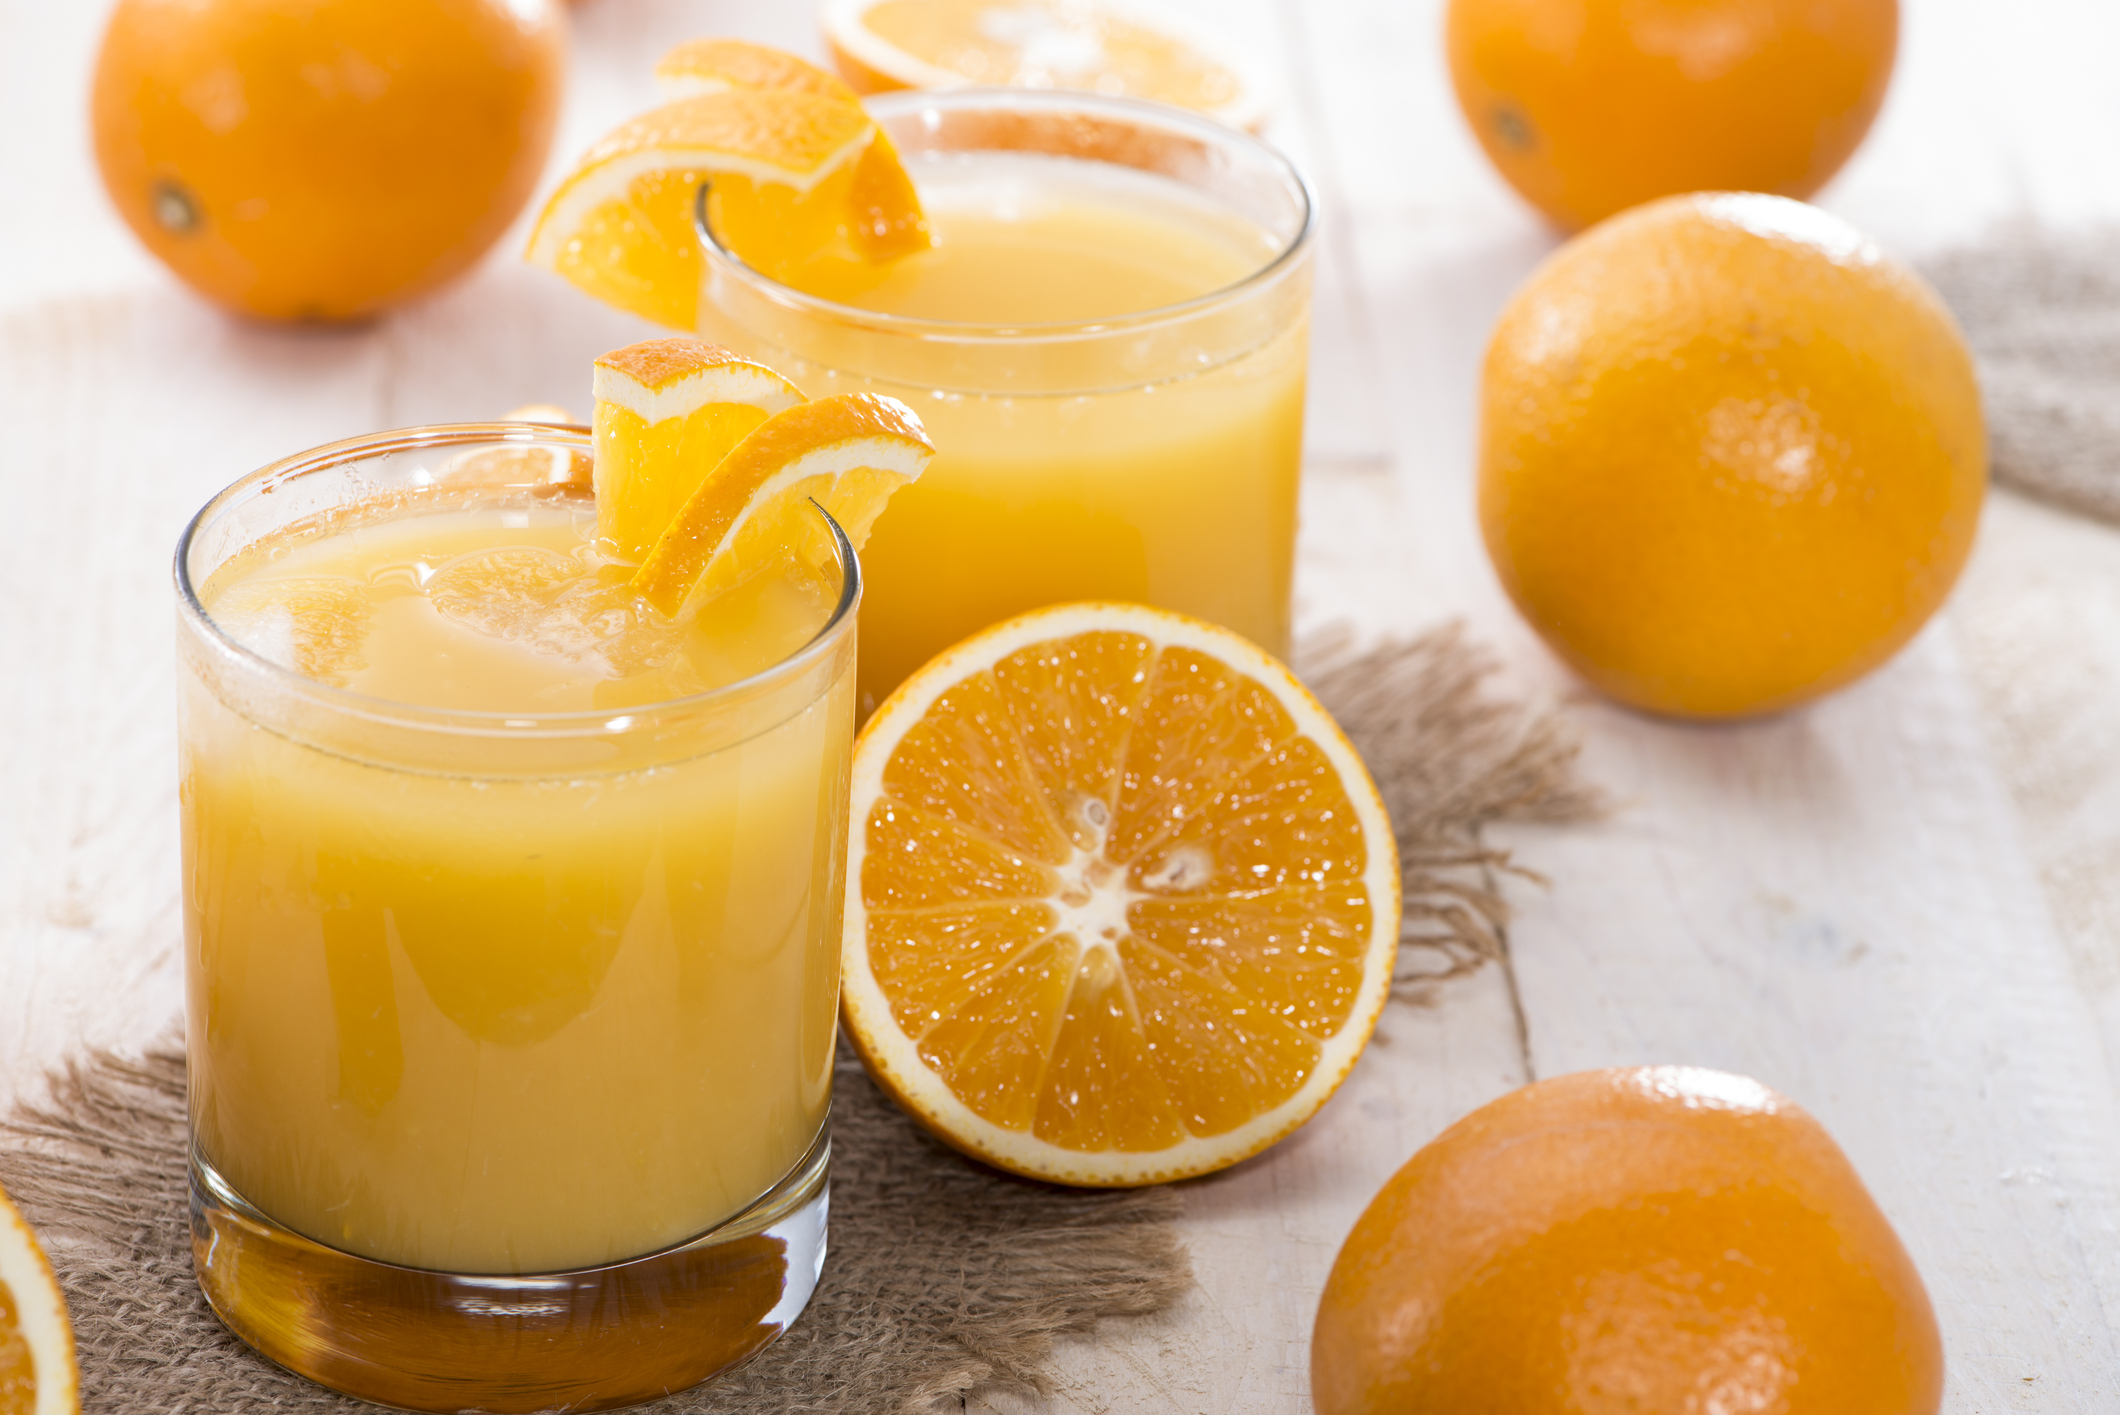 Portion of fresh made Orange Juice (with fruits)